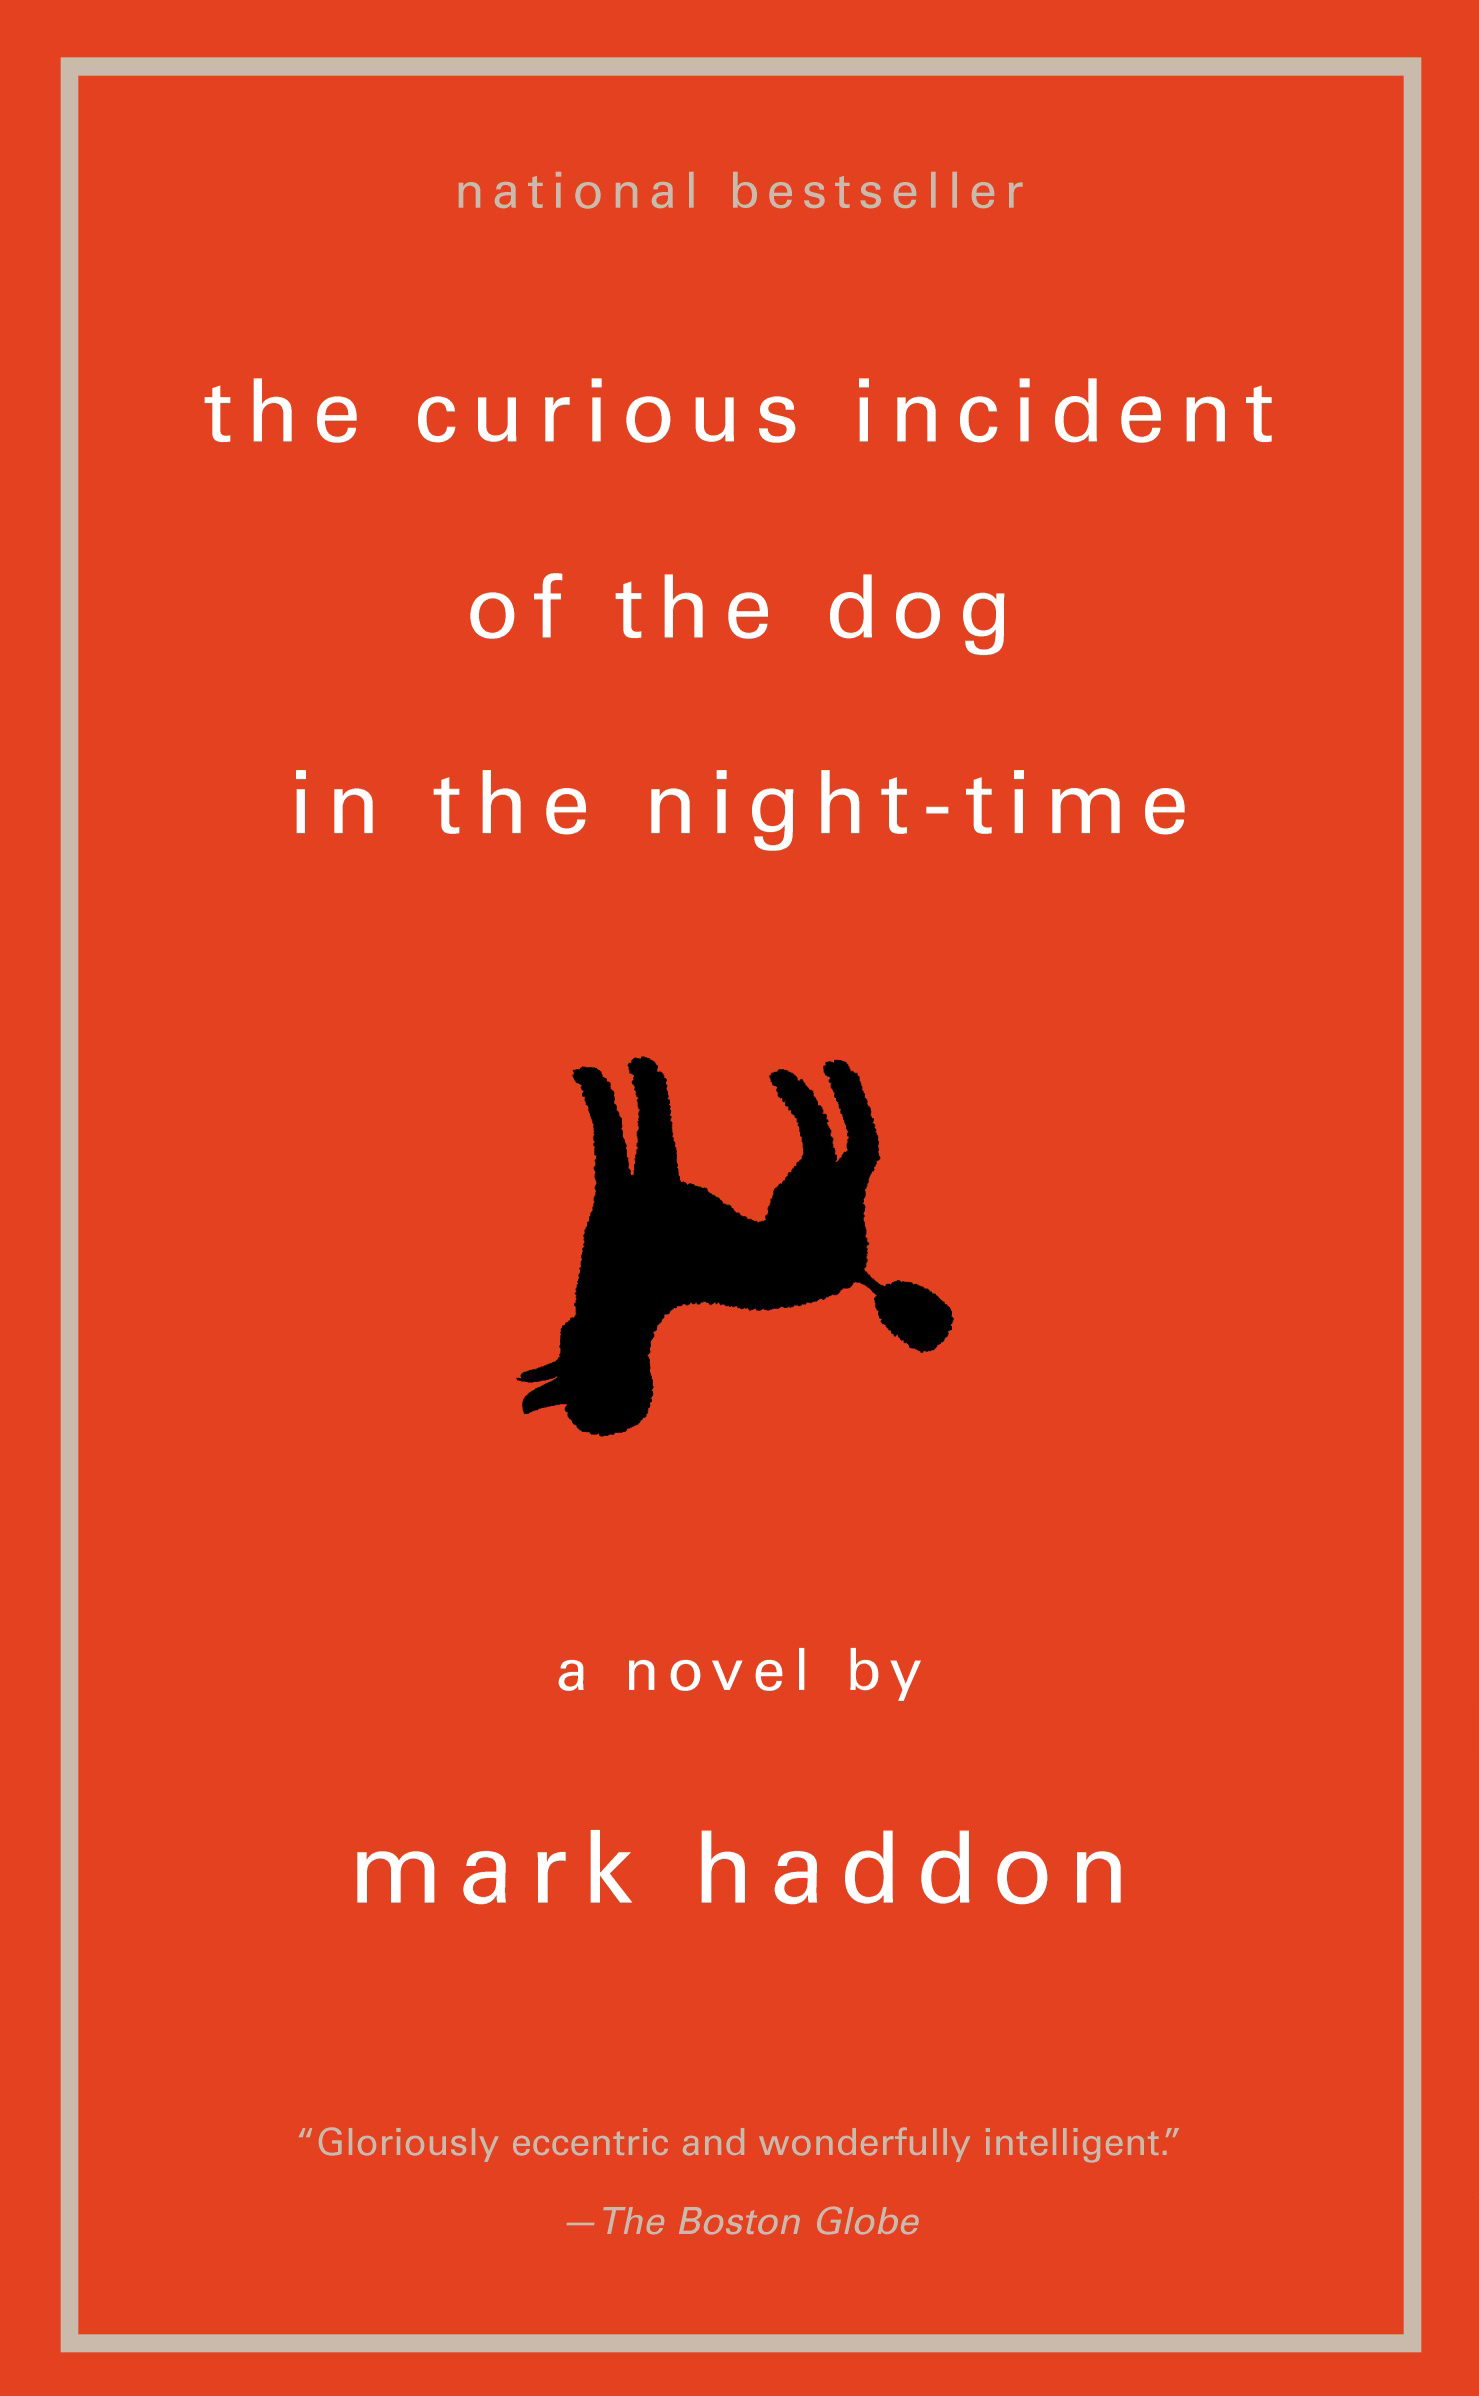 the-curious-incident-of%20-the-dog-in-the-night-time